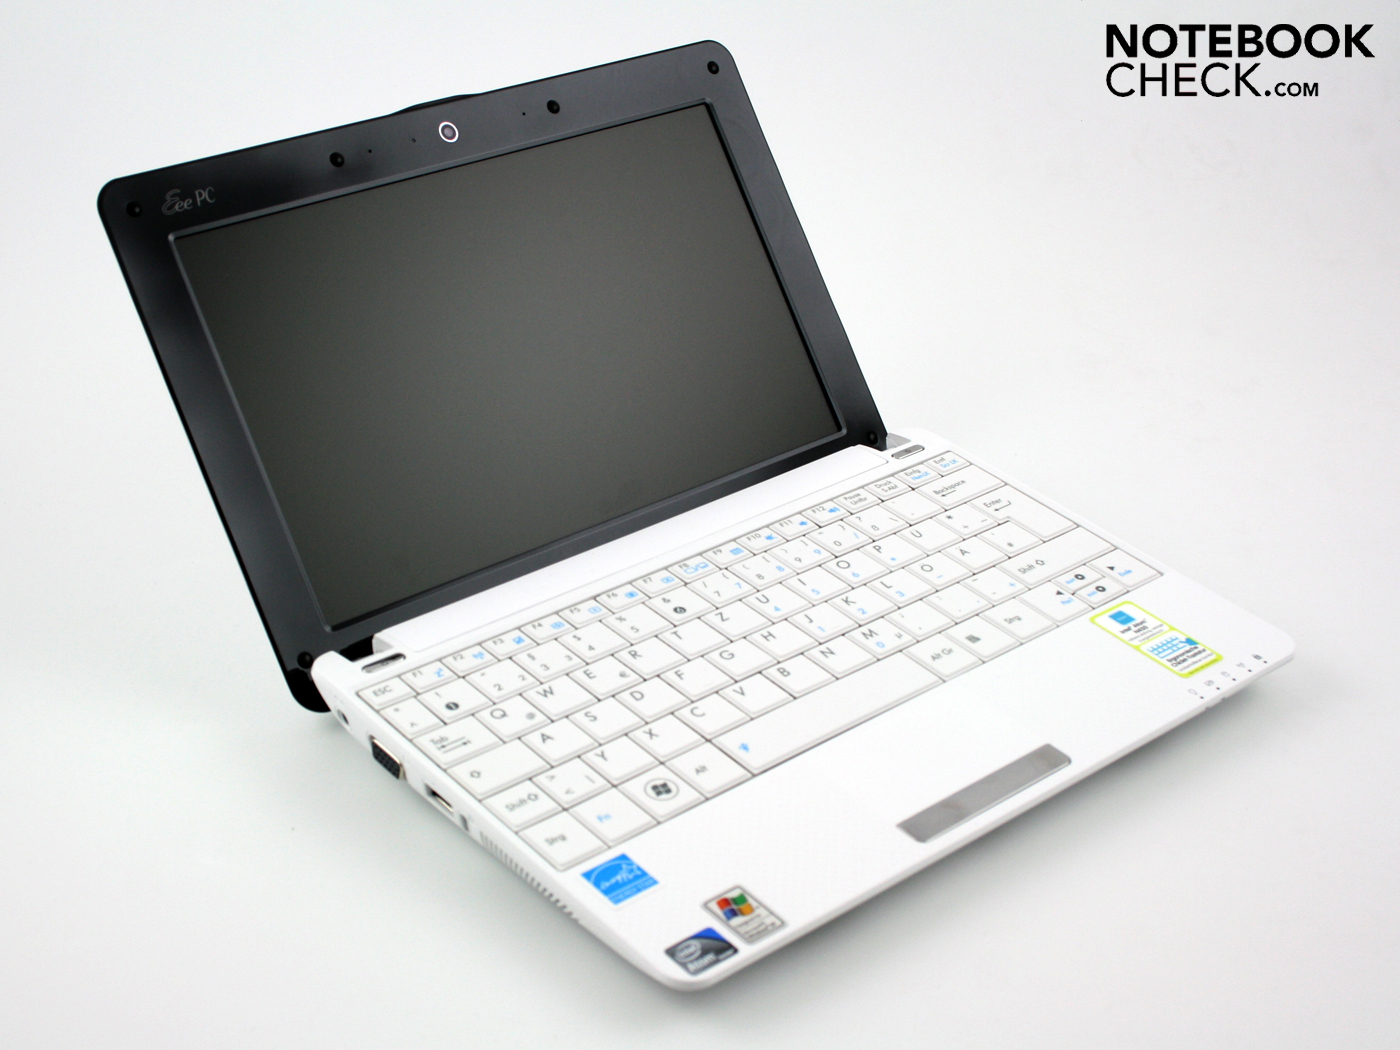 Driver for Asus Eee PC 1001PX Netbook KB